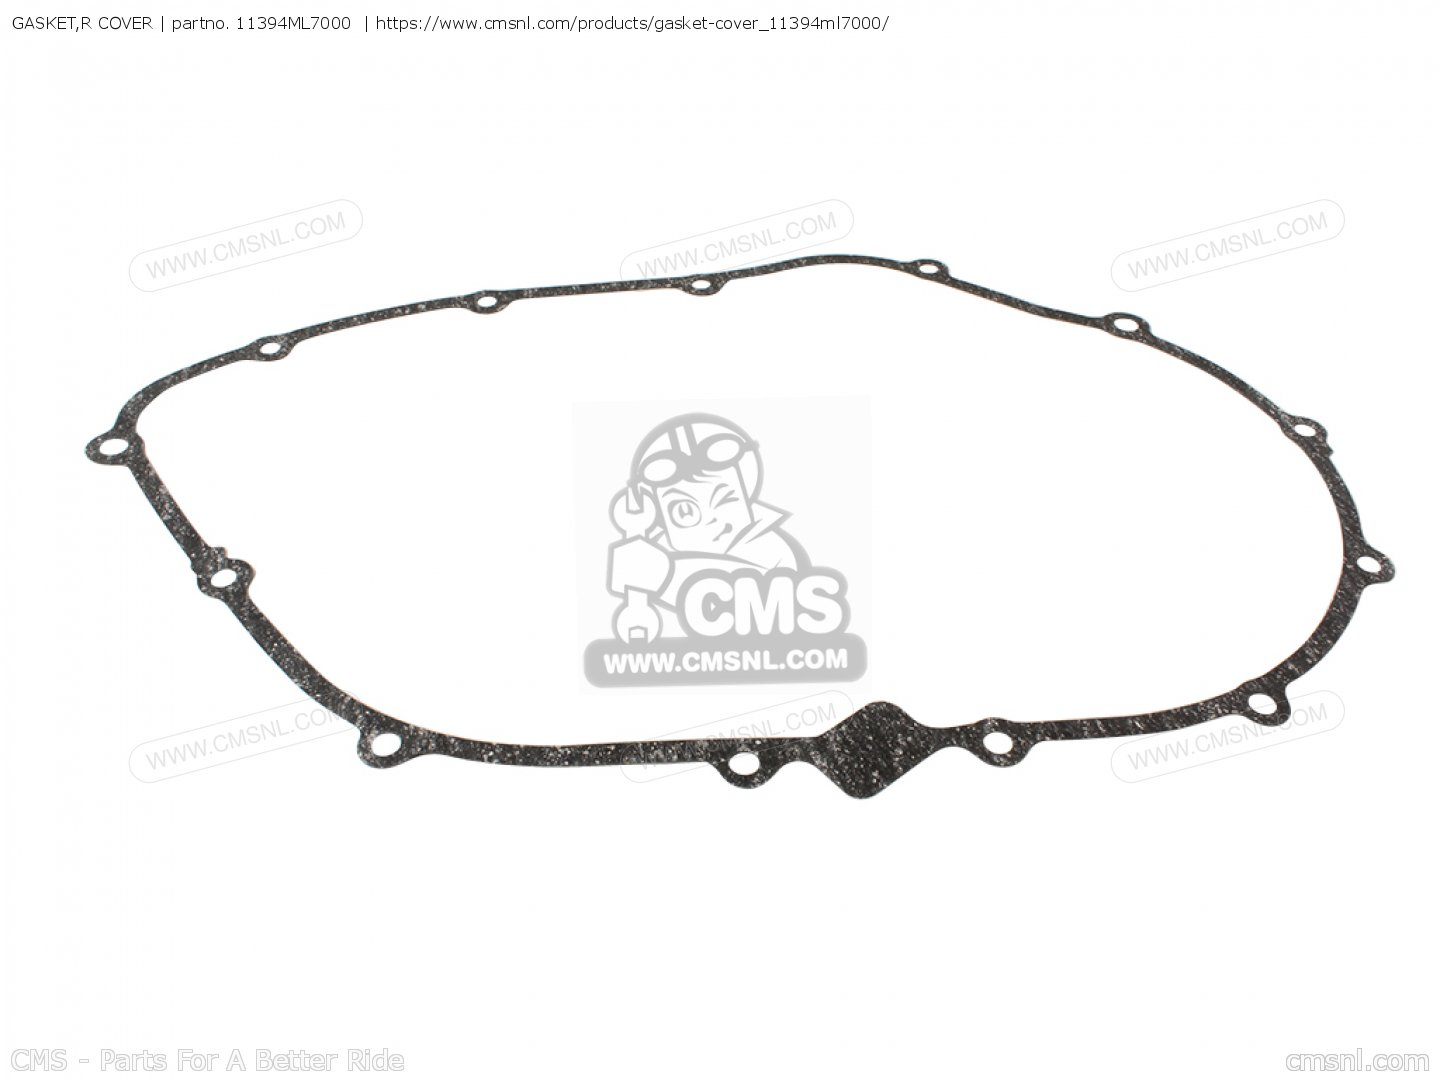 Gasket R Cover Mca For Vfr750r Rc30 J Germany